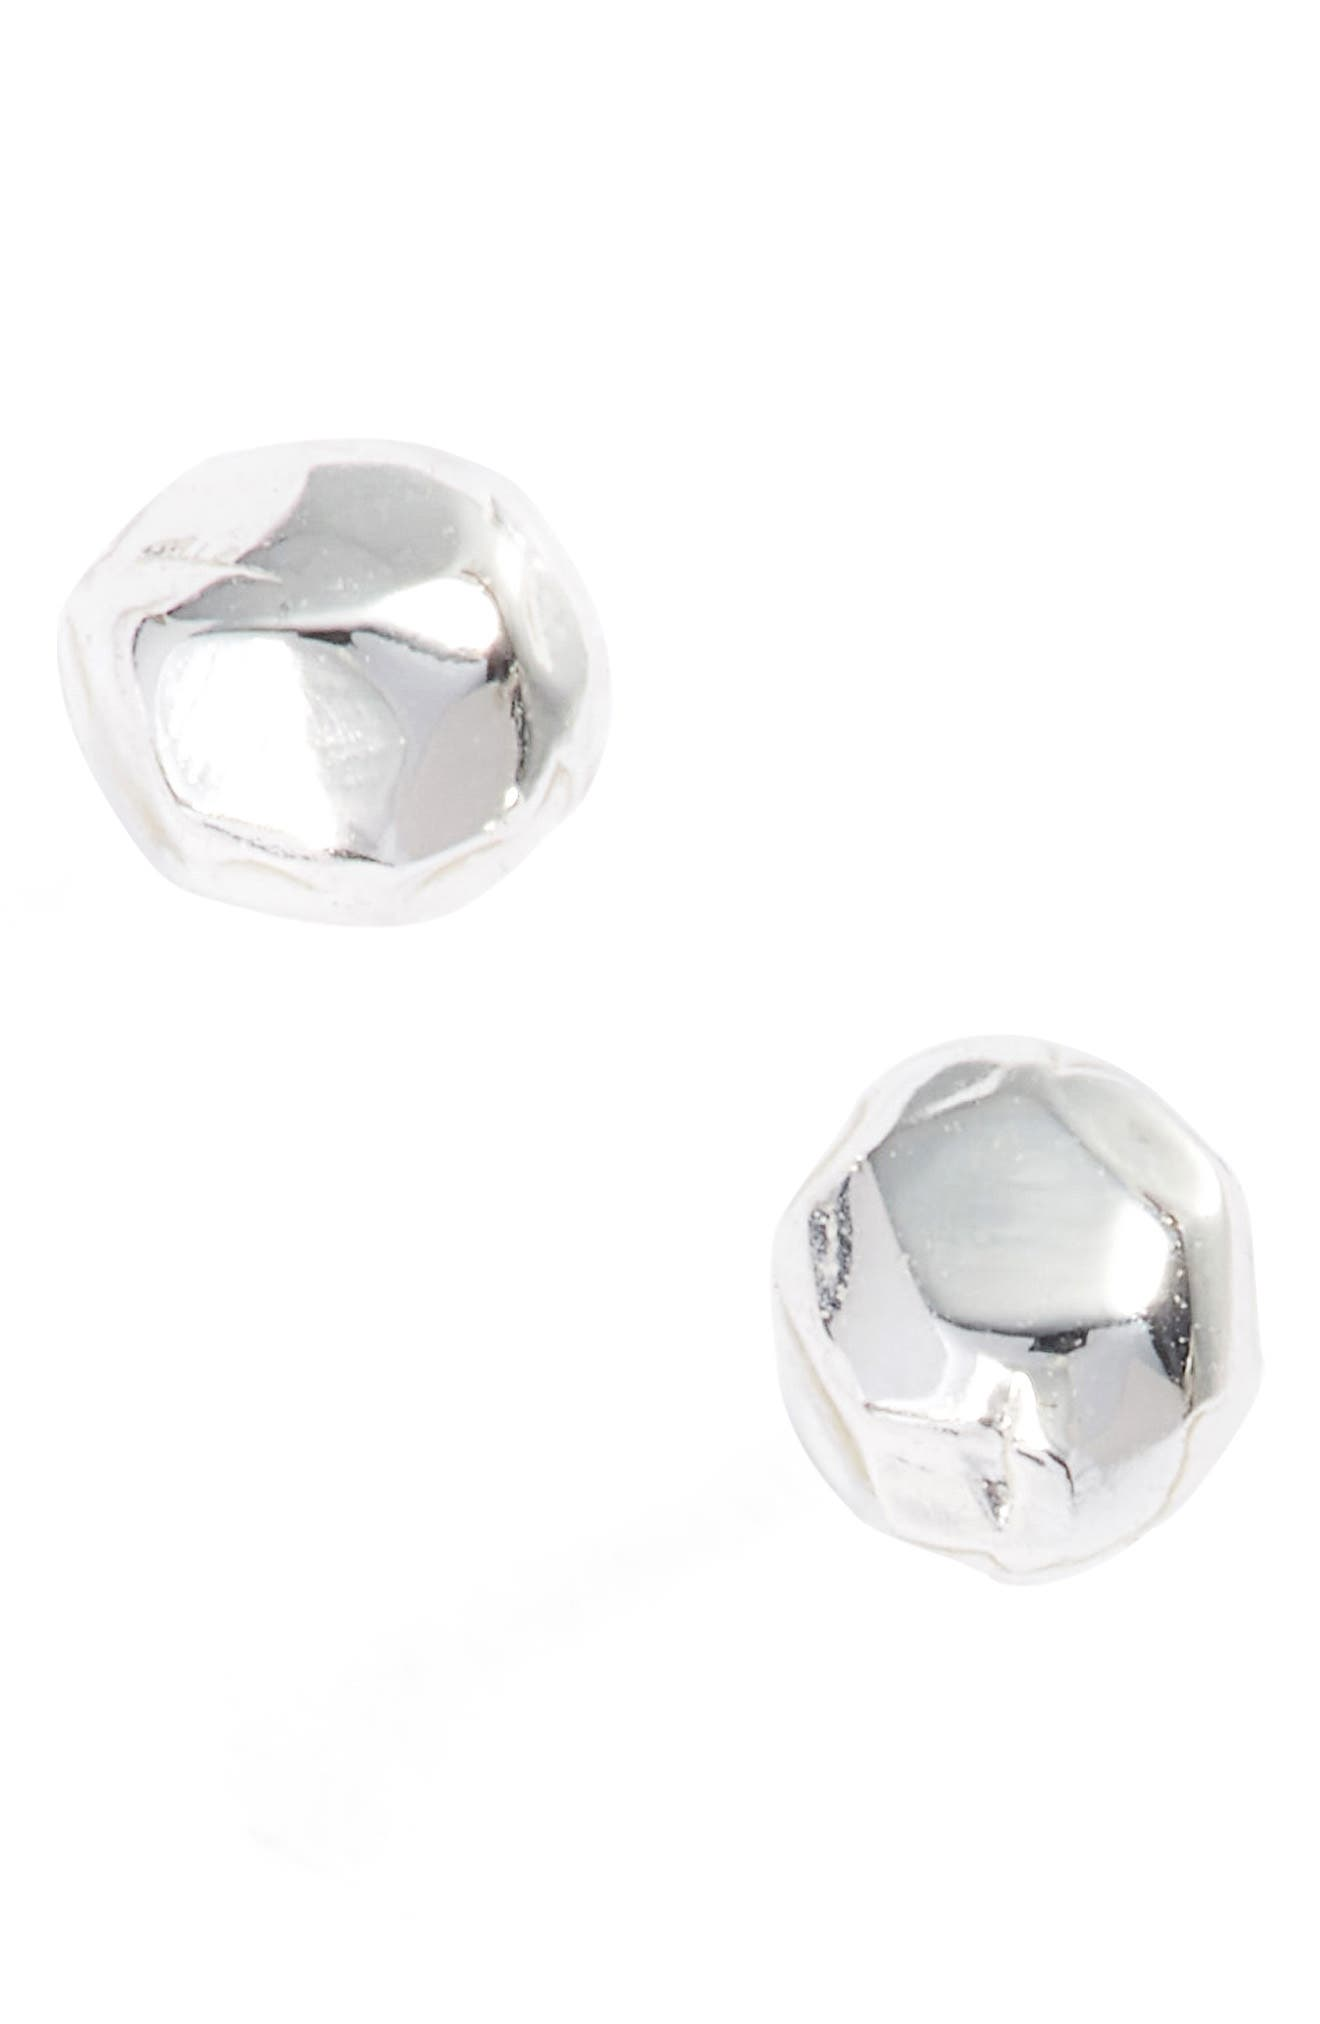 Leucadia Mini Stud Earrings,                             Main thumbnail 1, color,                             049